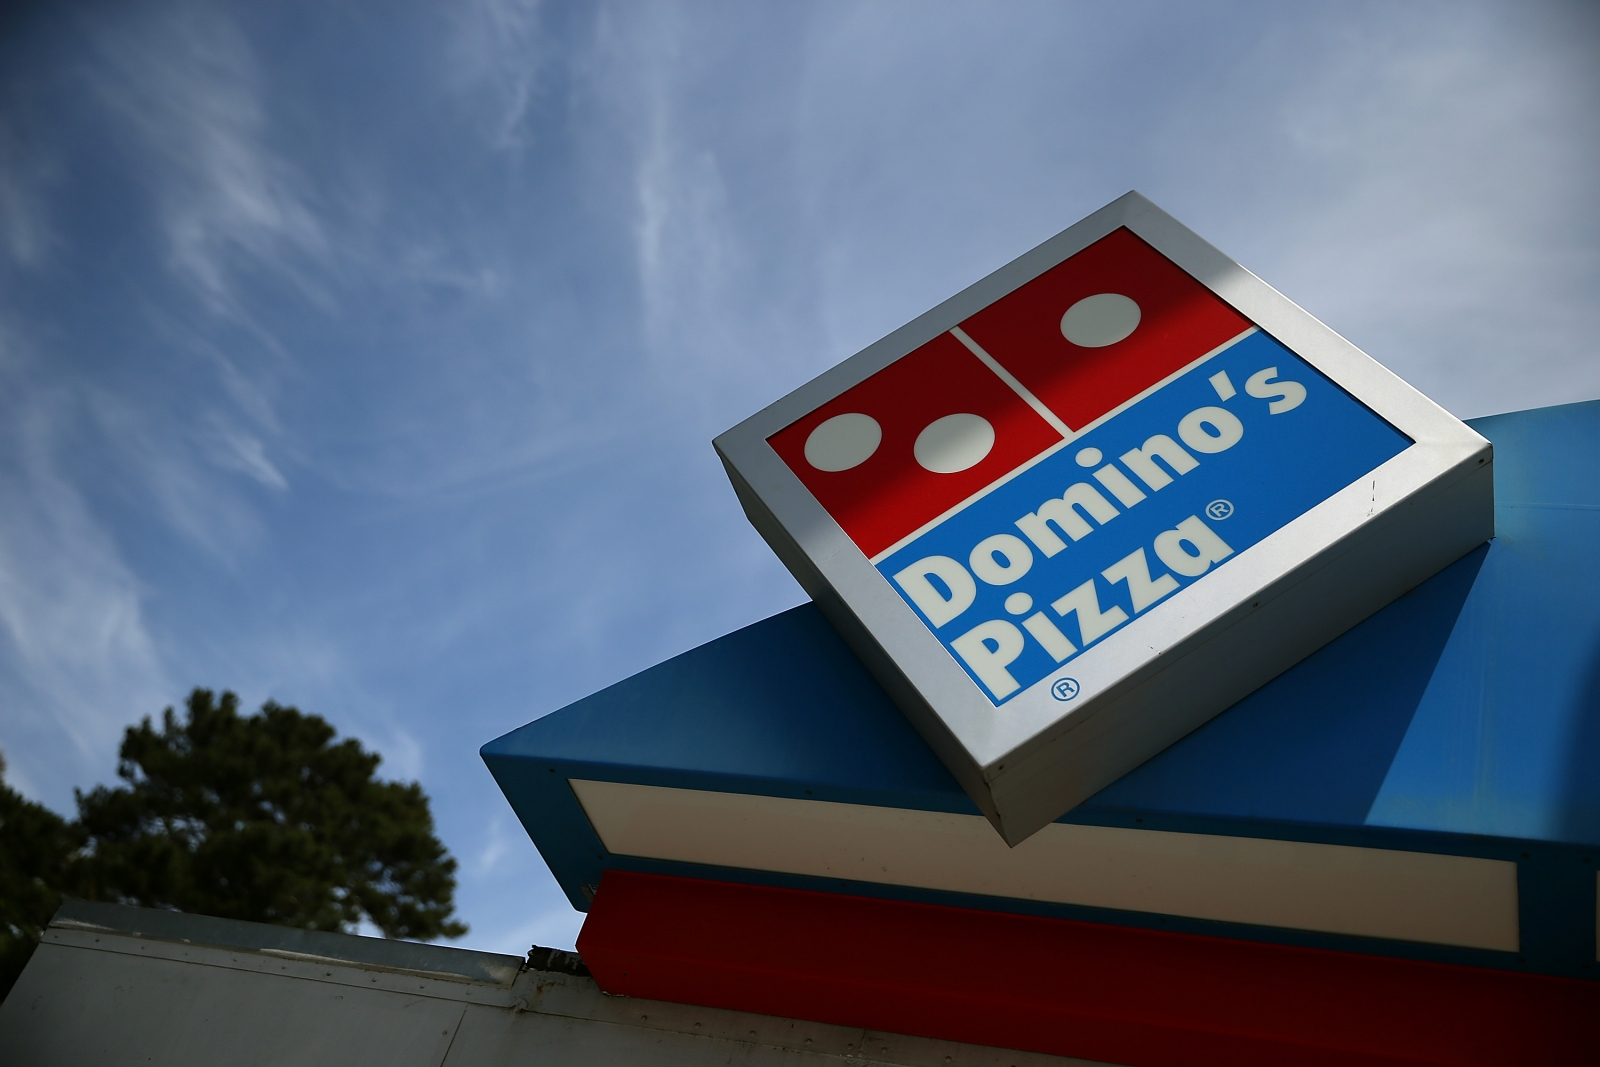 Domino's GPS tracking customers